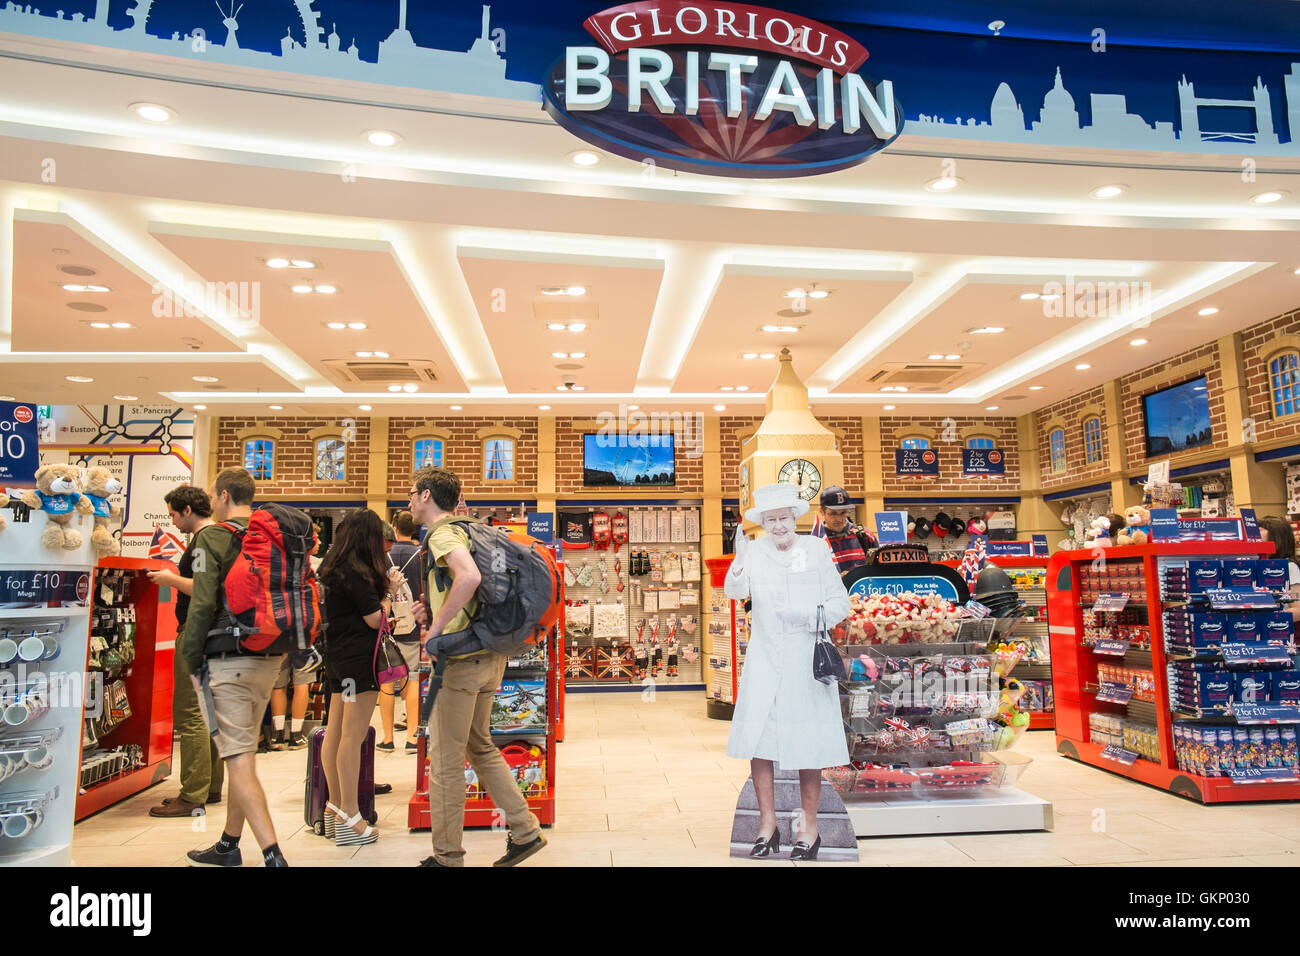 funny royalty the queen greets tourists at tourist shop outlet stock